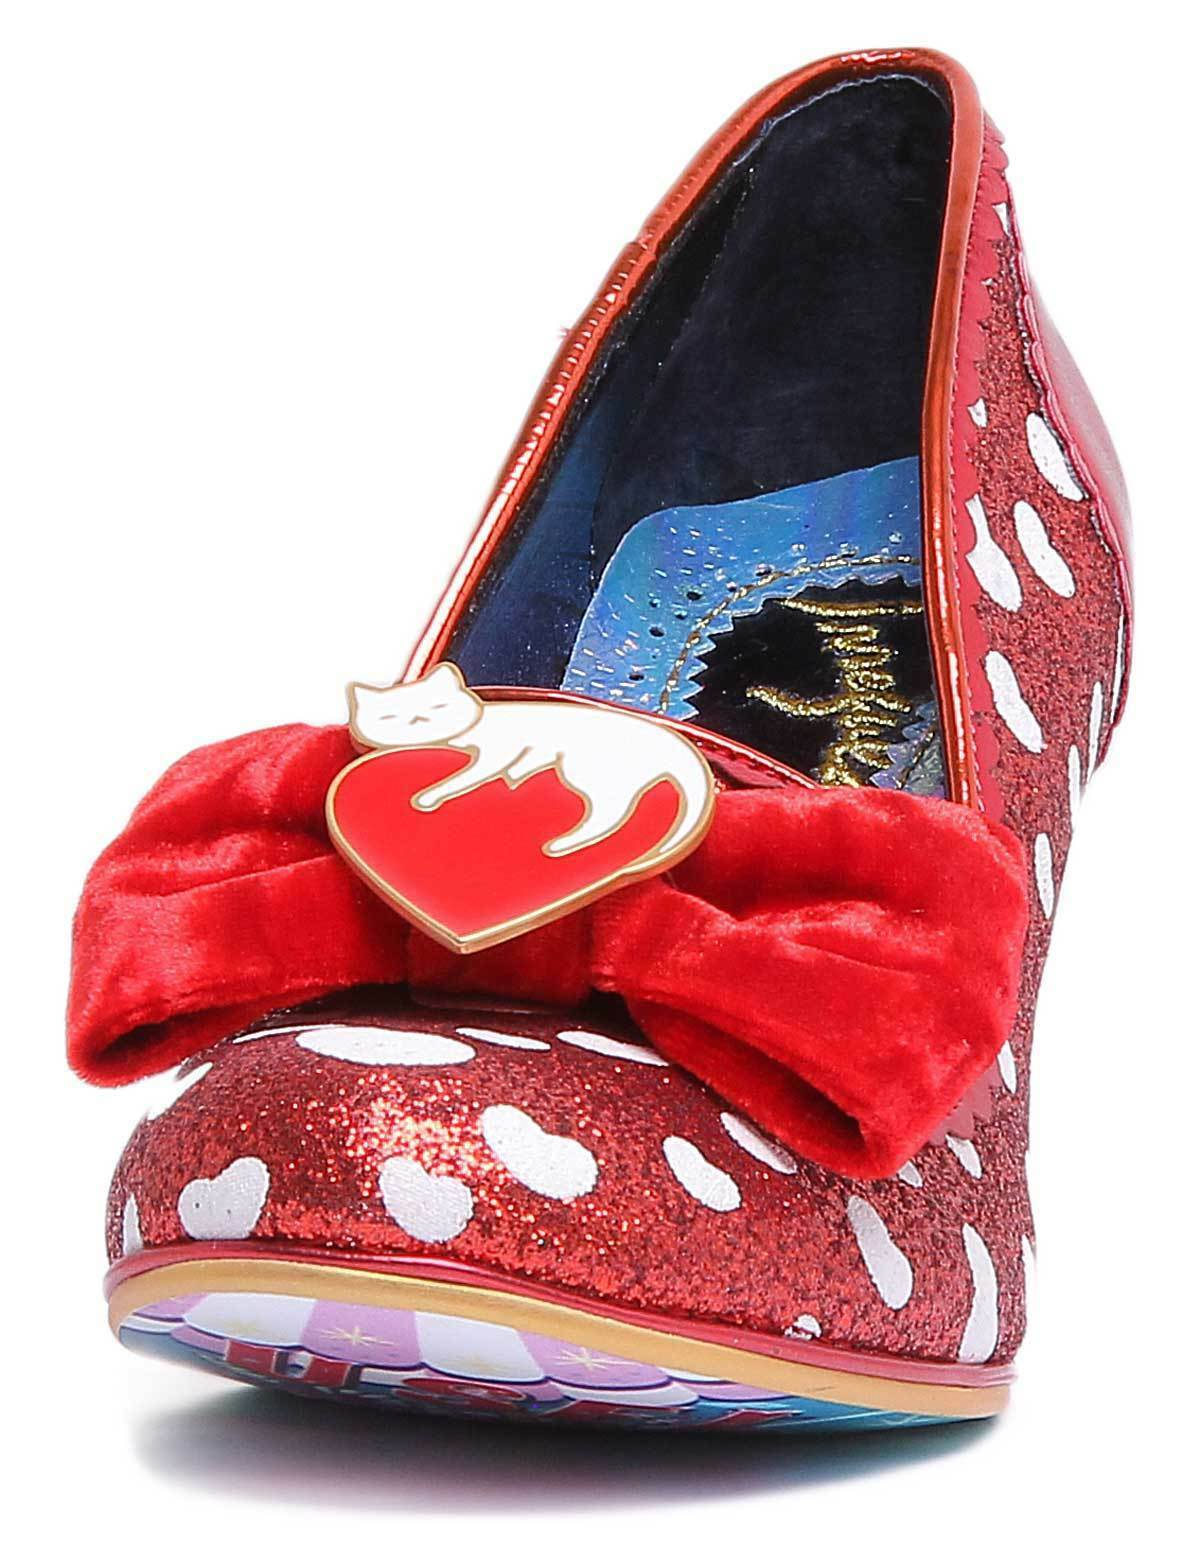 Irregular Choice DREAM DREAM DREAM LOVER Damenschuhe ROT Synthetic Schuhes 5980bf